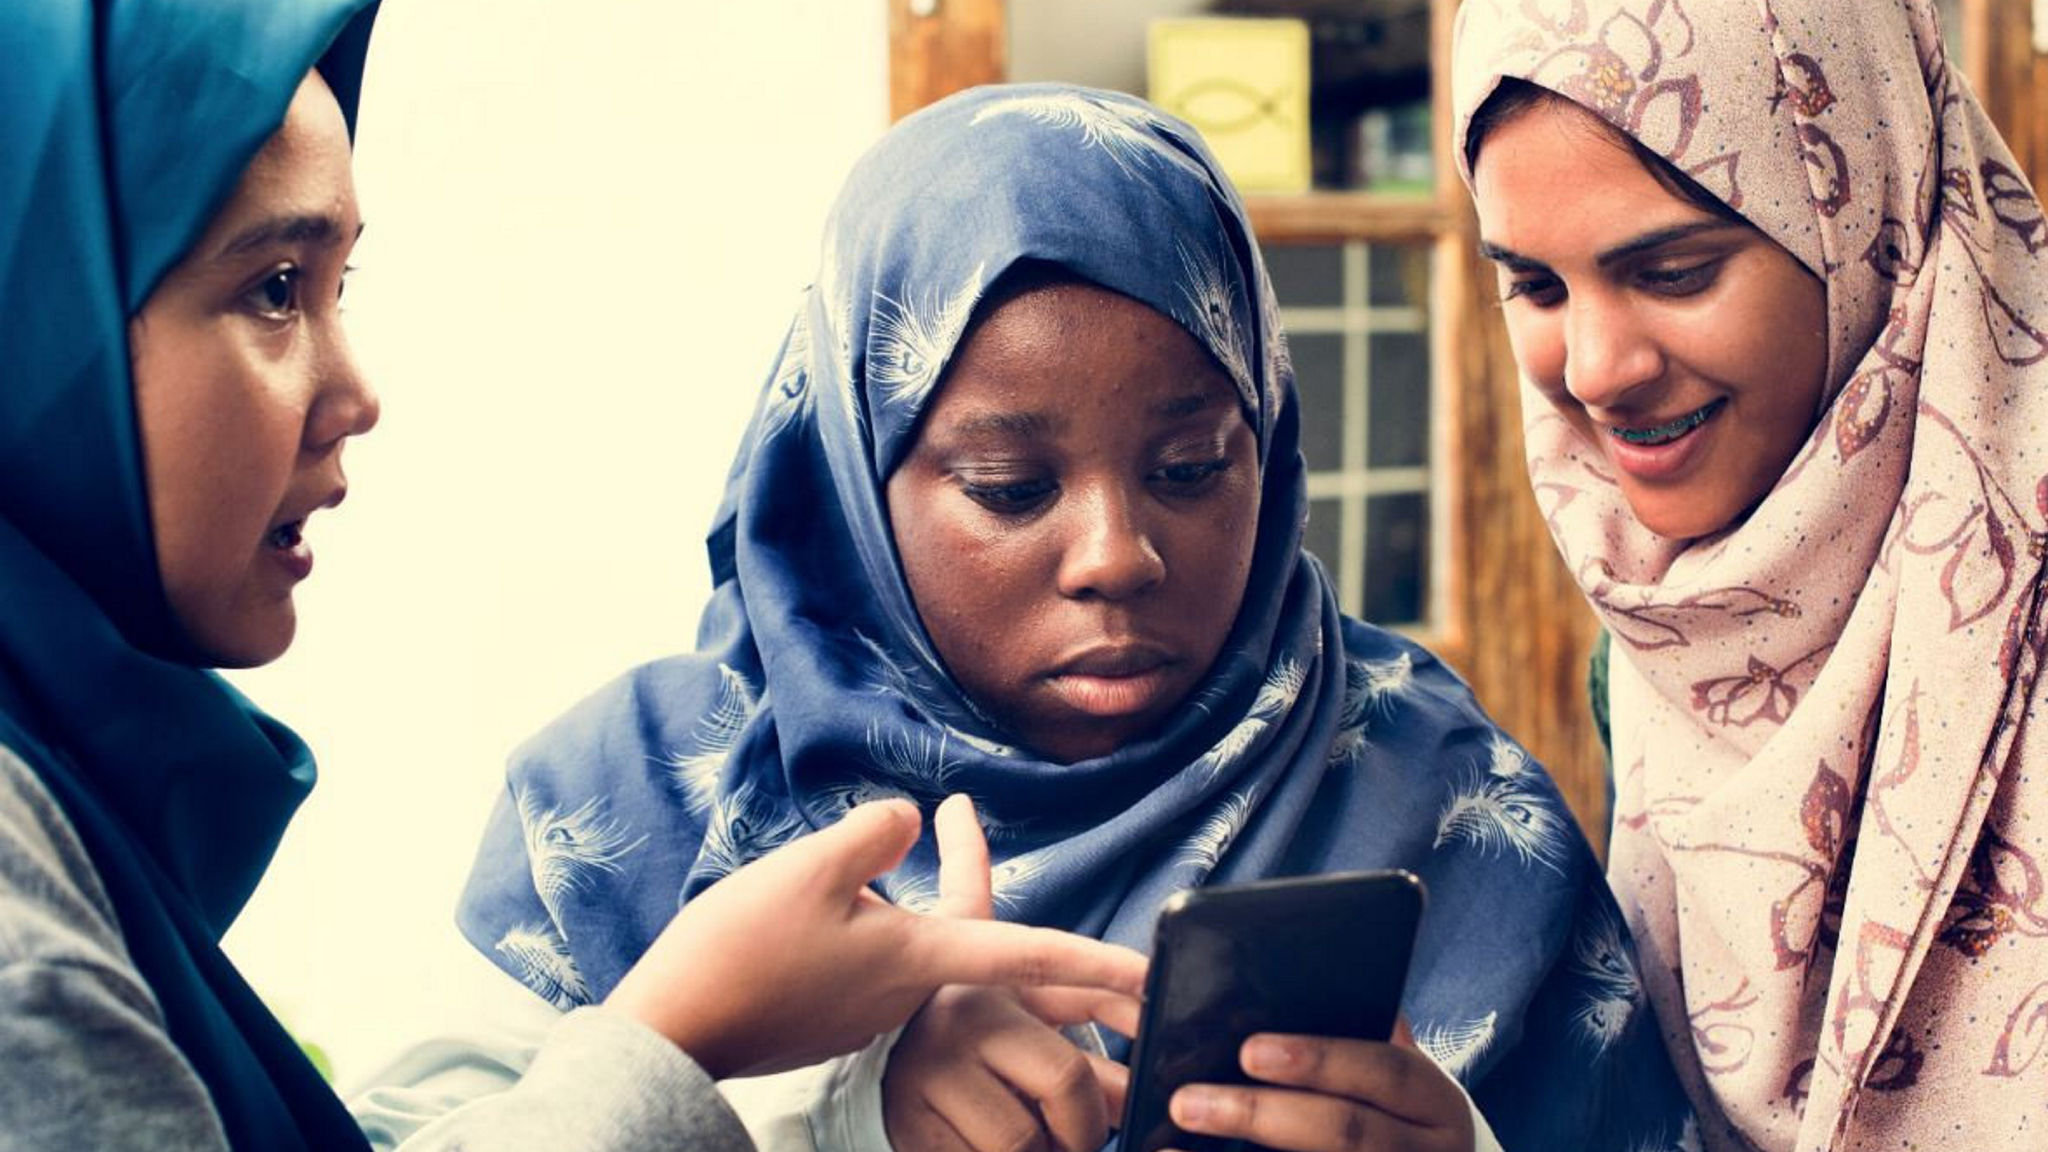 'Femtech' adapted to benefit women and girls in poorer countries